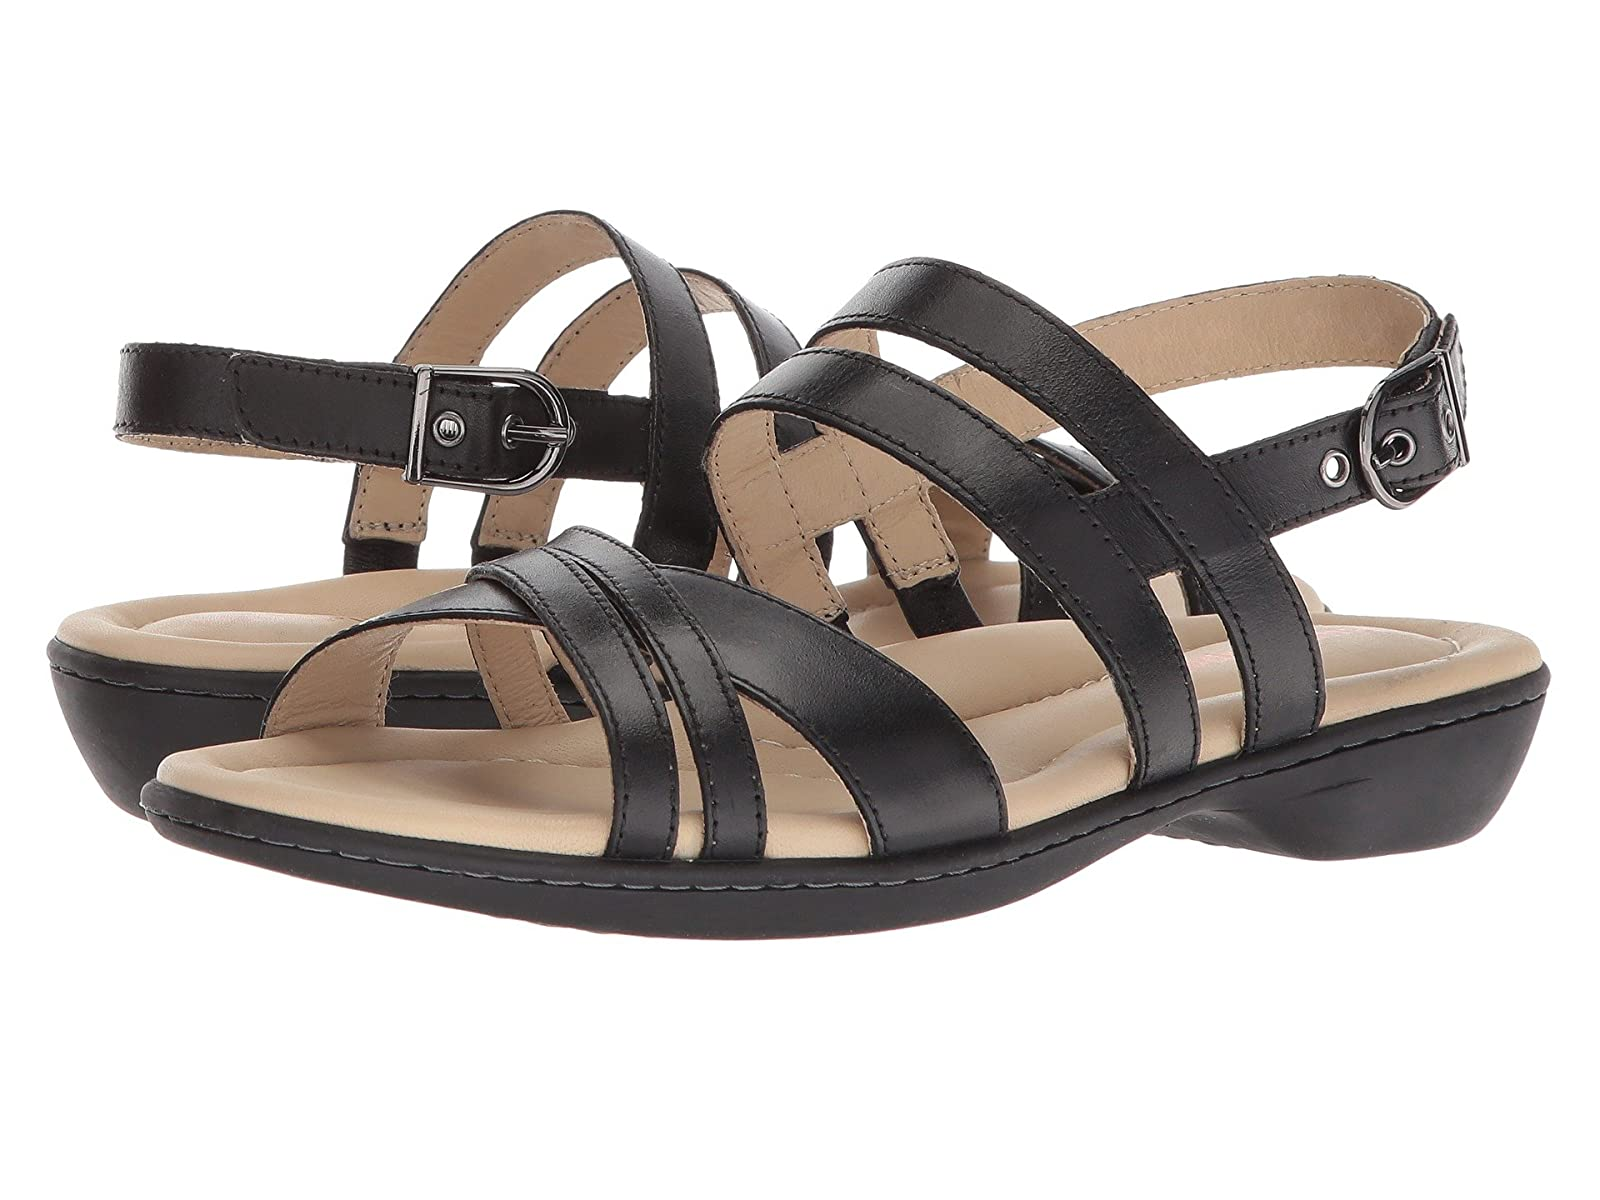 Hush Puppies Dachshund StrappyAtmospheric grades have affordable shoes